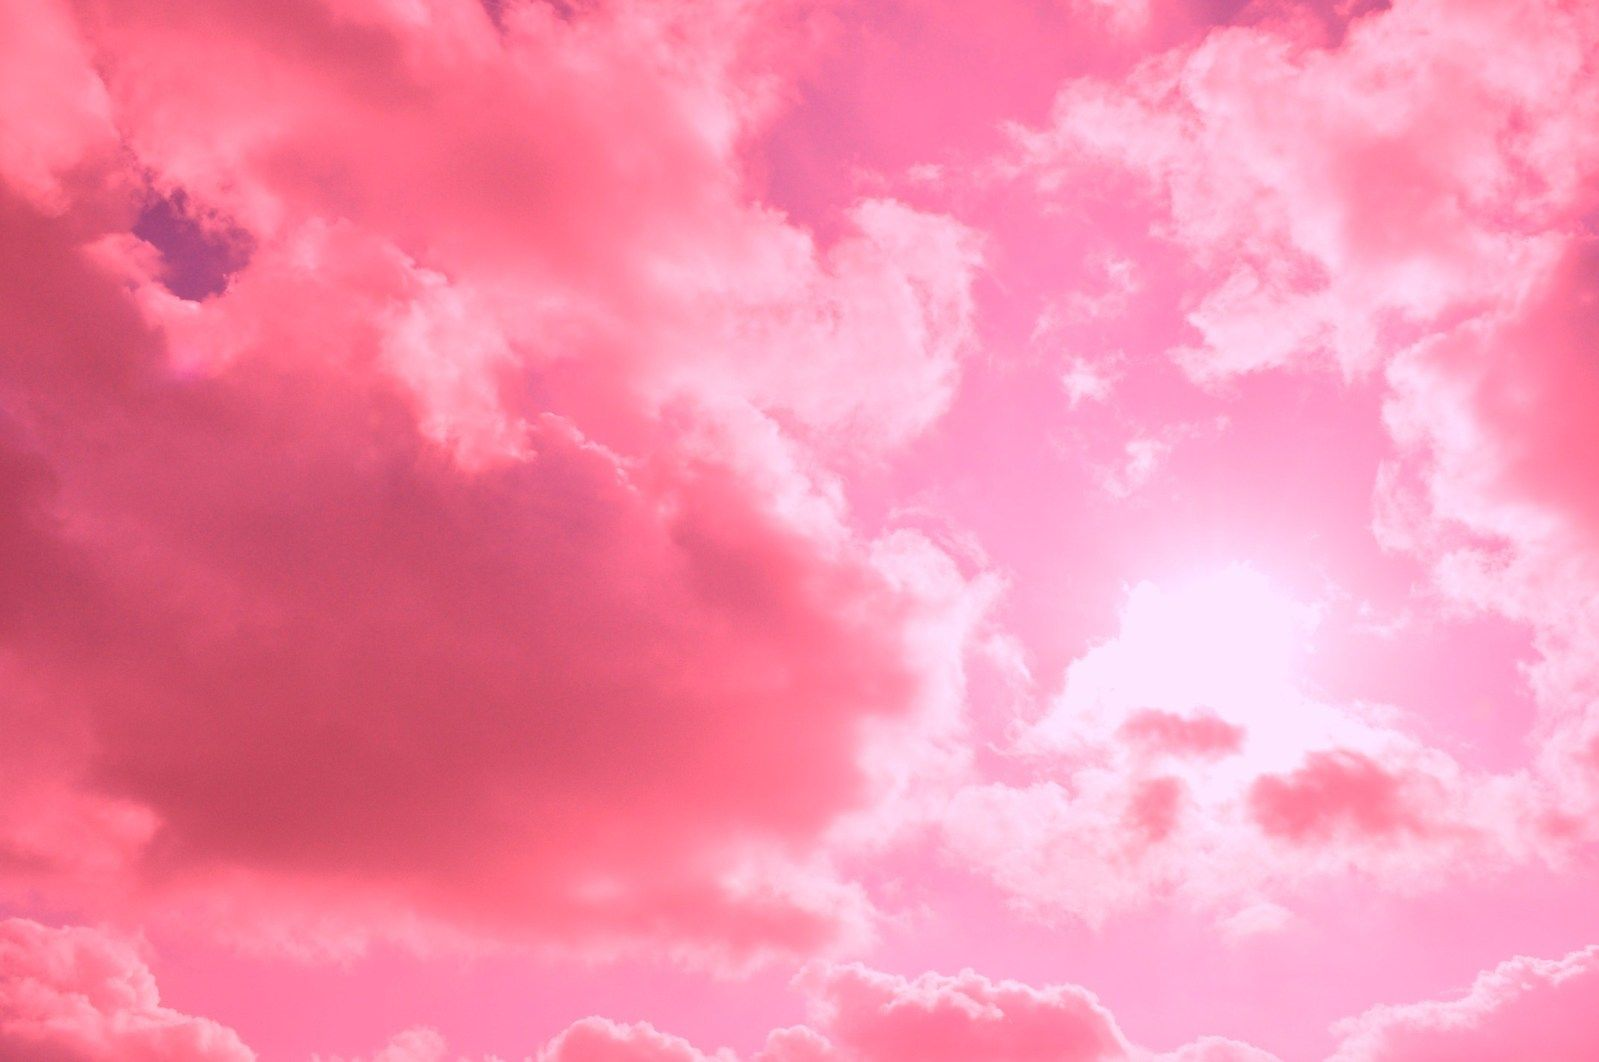 Aesthetic Cloud Wallpapers Top Free Aesthetic Cloud